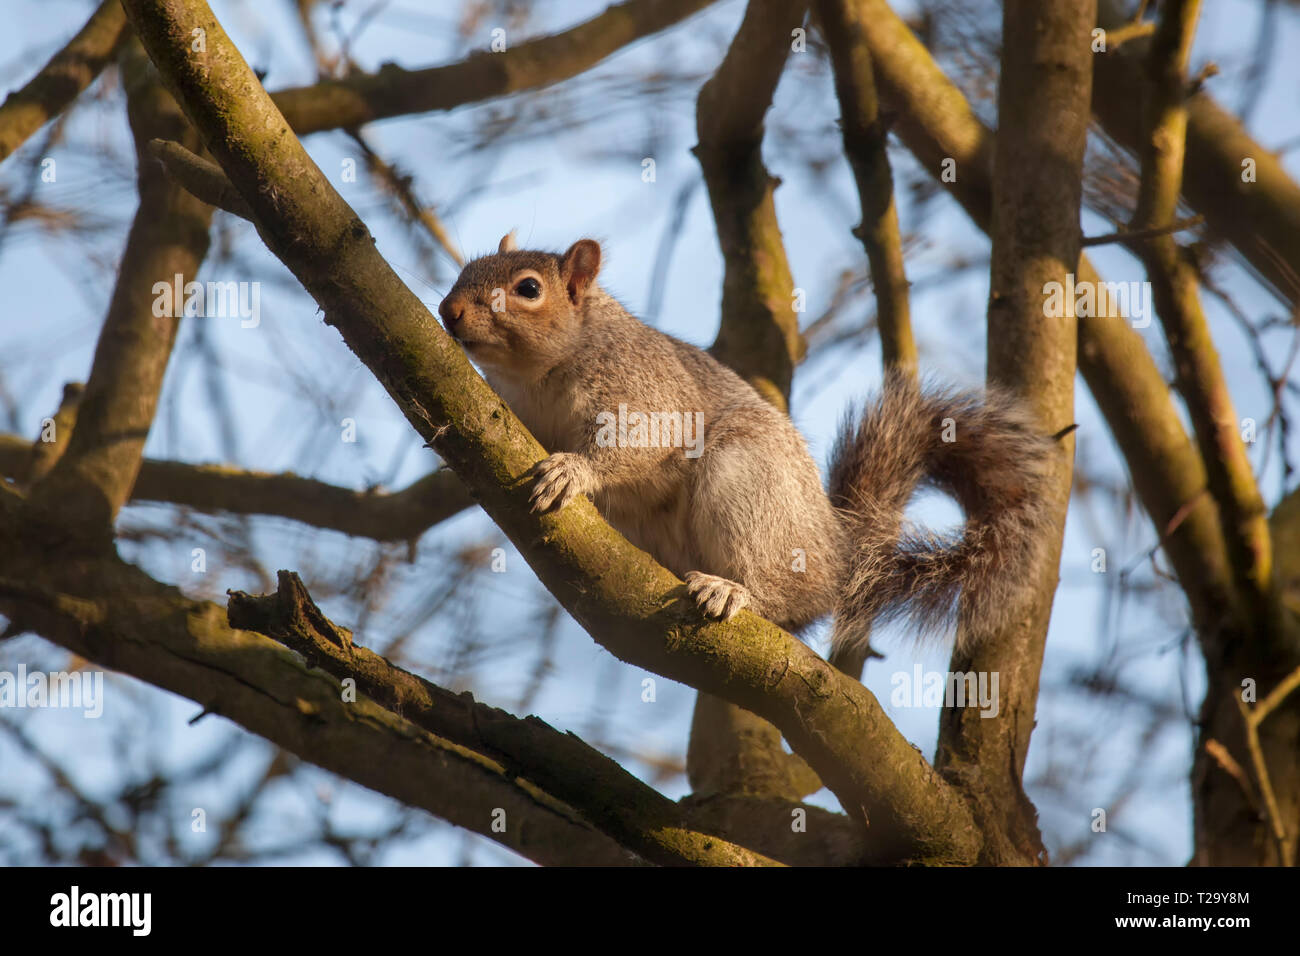 Grey squirrel climbing on branches of a tree in Winter Stock Photo